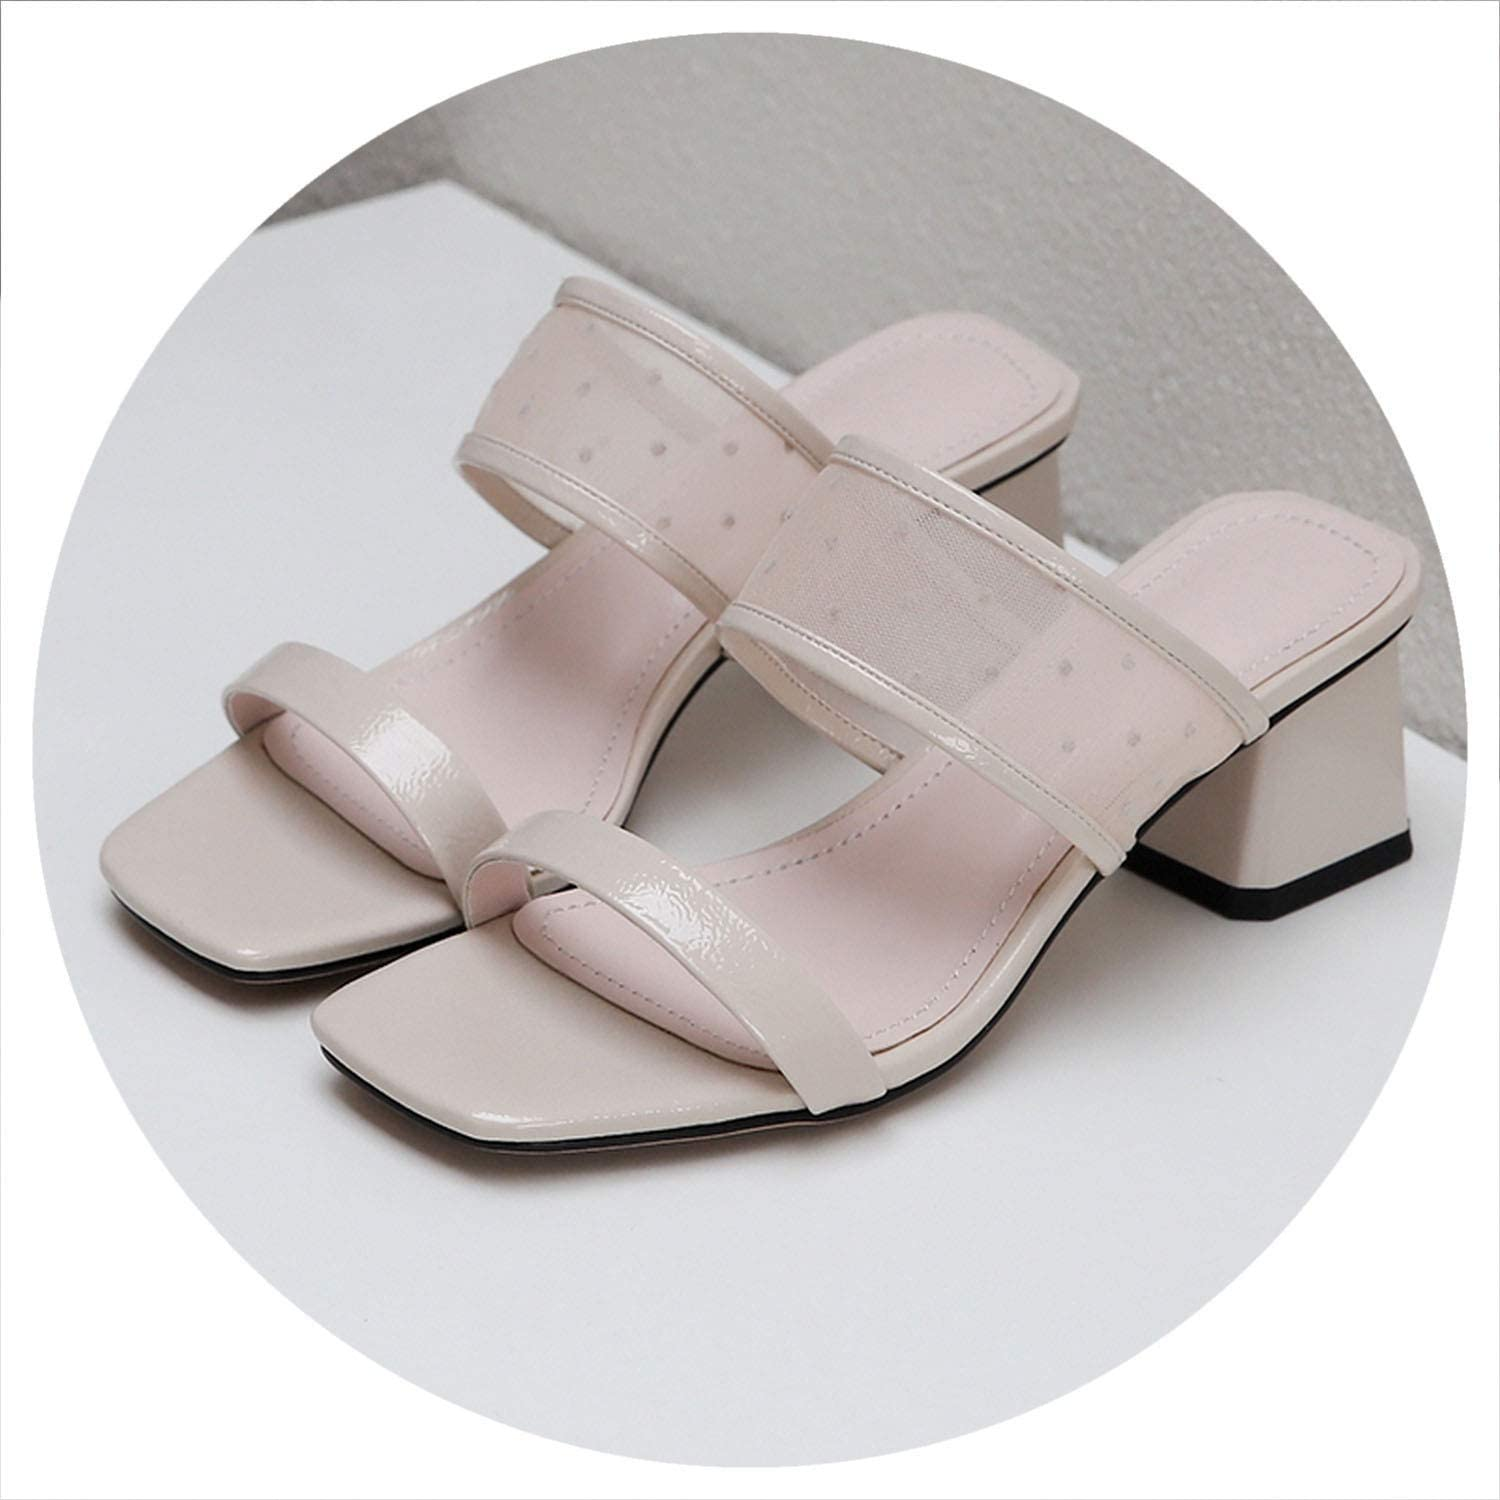 Women Slippers High Heel shoes Summer Comfort Wedding Dress shoes Sandals Large Size 34-43